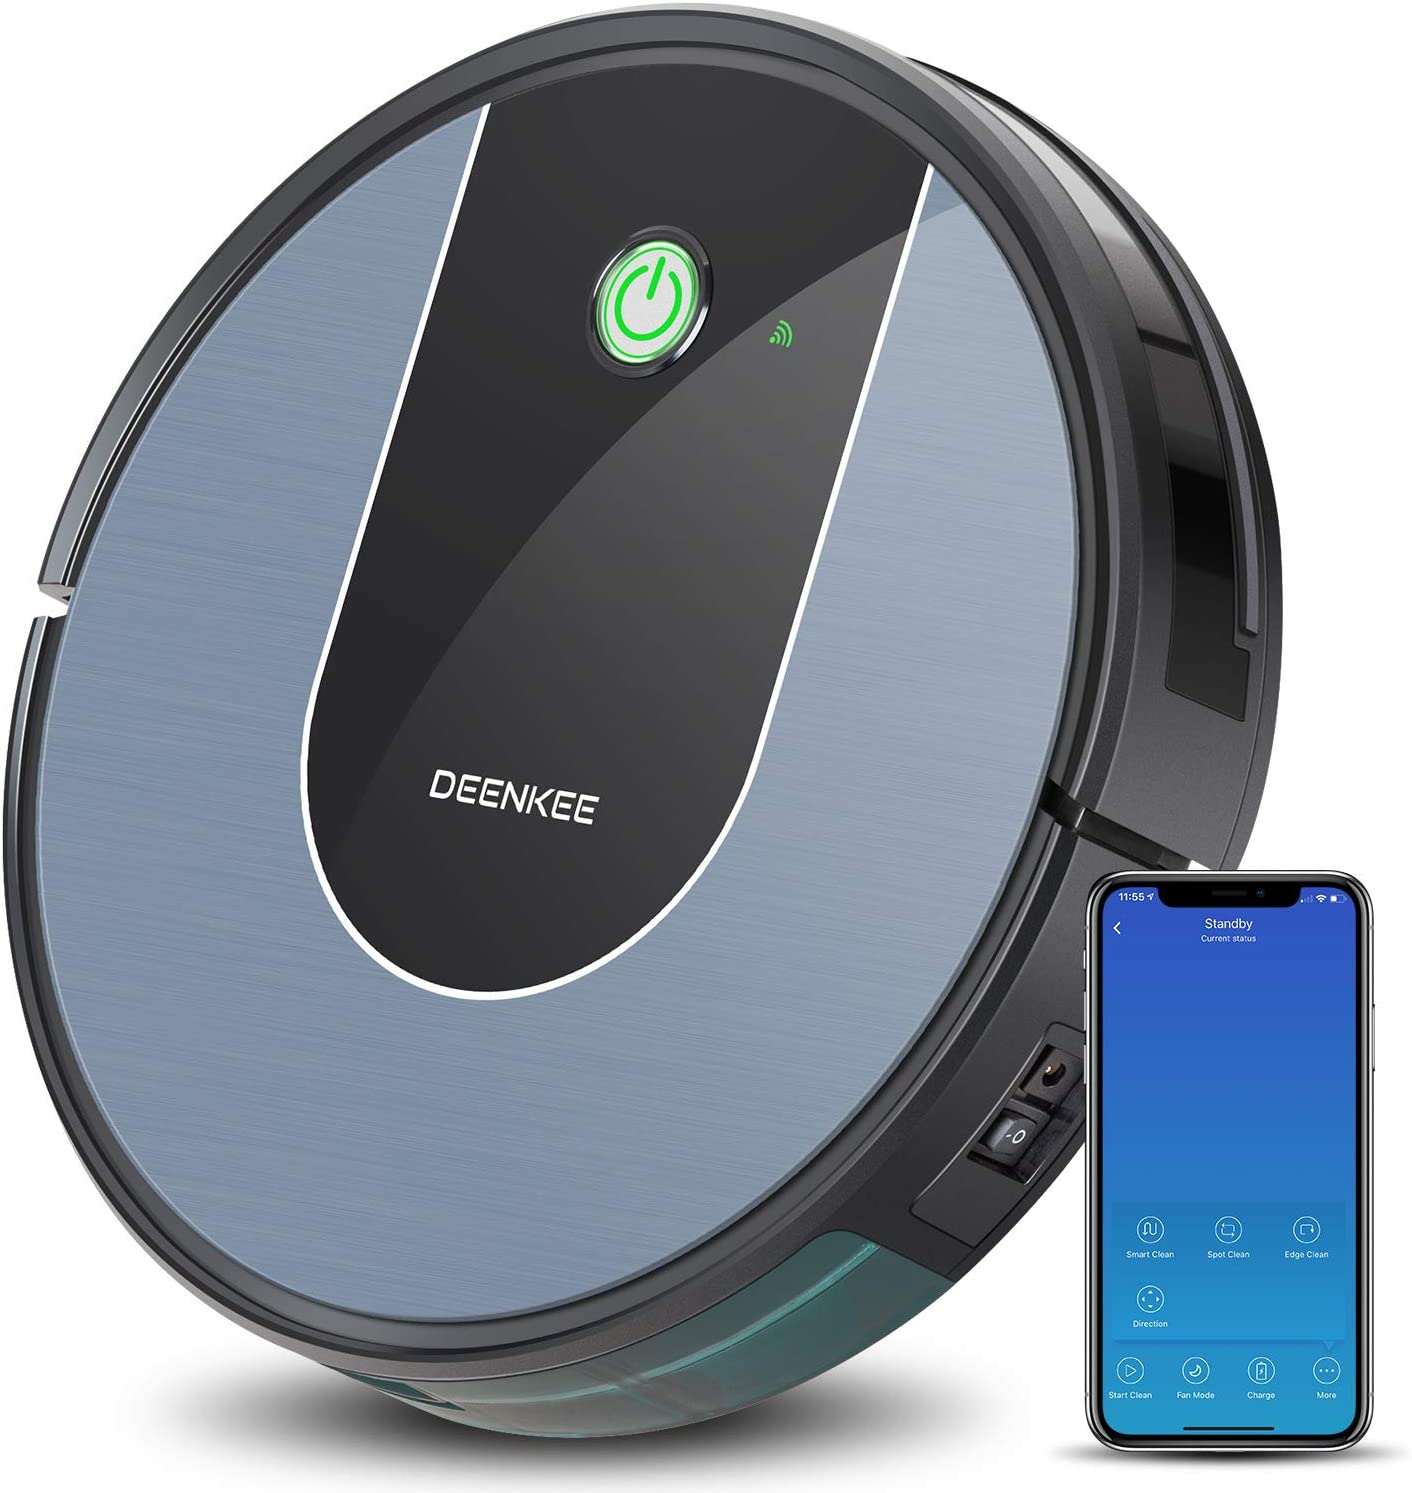 DeenKee DK700 Robot Vacuum,Wi-Fi,App Control,1400Pa High Suction,2.9 inch Super-Thin,6 Cleaning Modes,Quiet,Work with Alxea,Robotic Vacuum Cleaner for Pet Hair,Hard Floor,Carpet